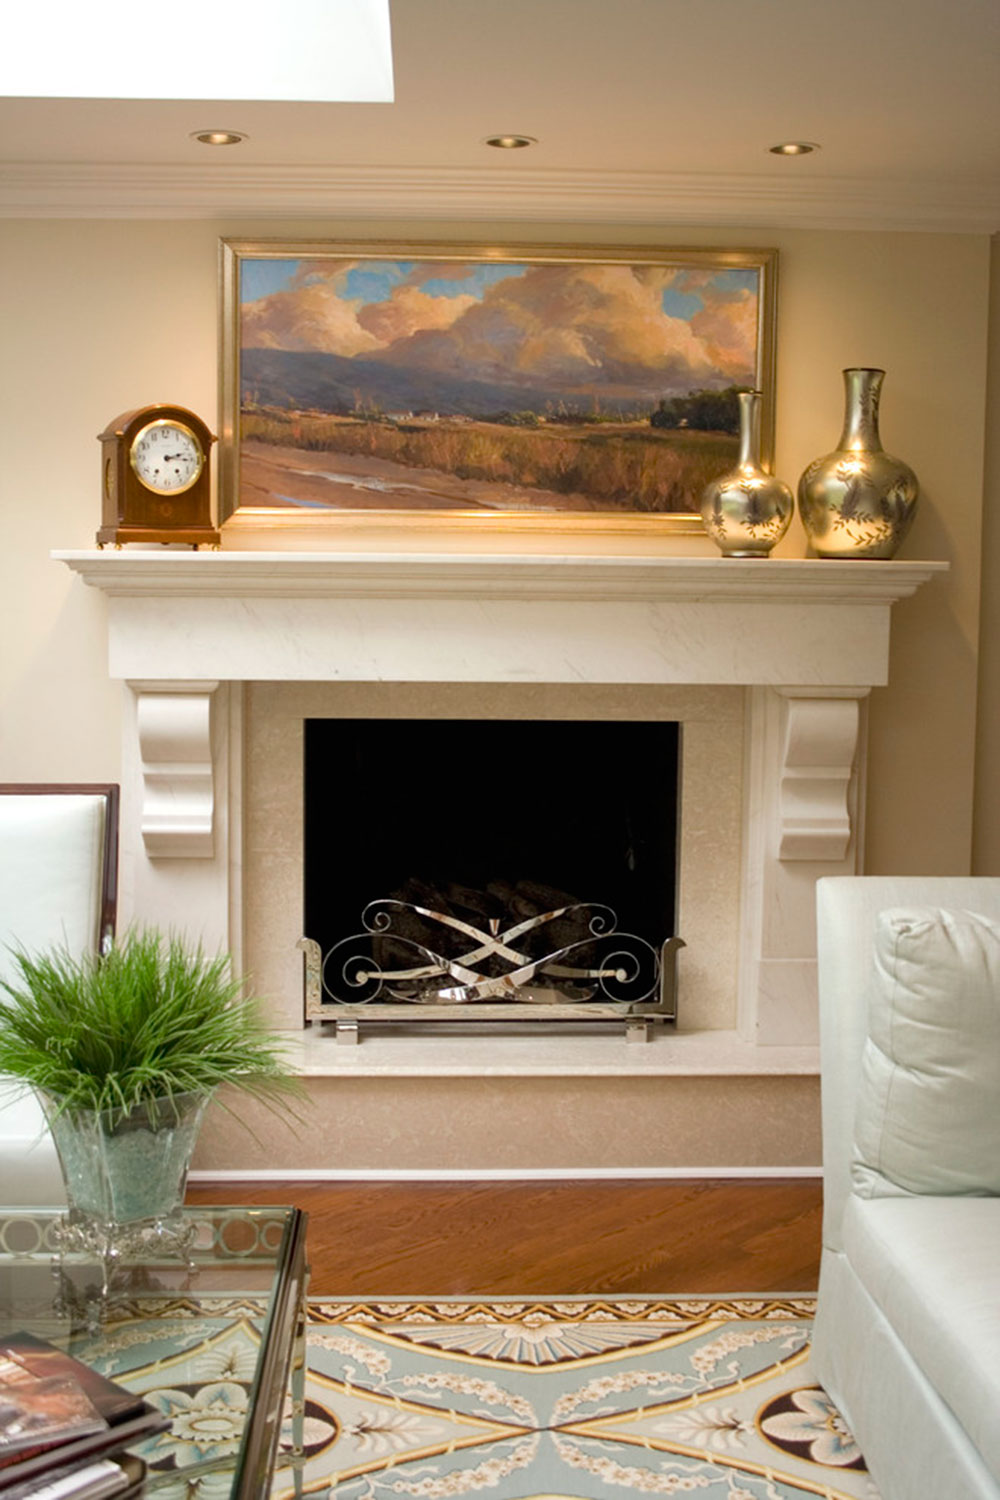 Fireplace Mantel Decorating Ideas For A Cozy Home2 Fireplace